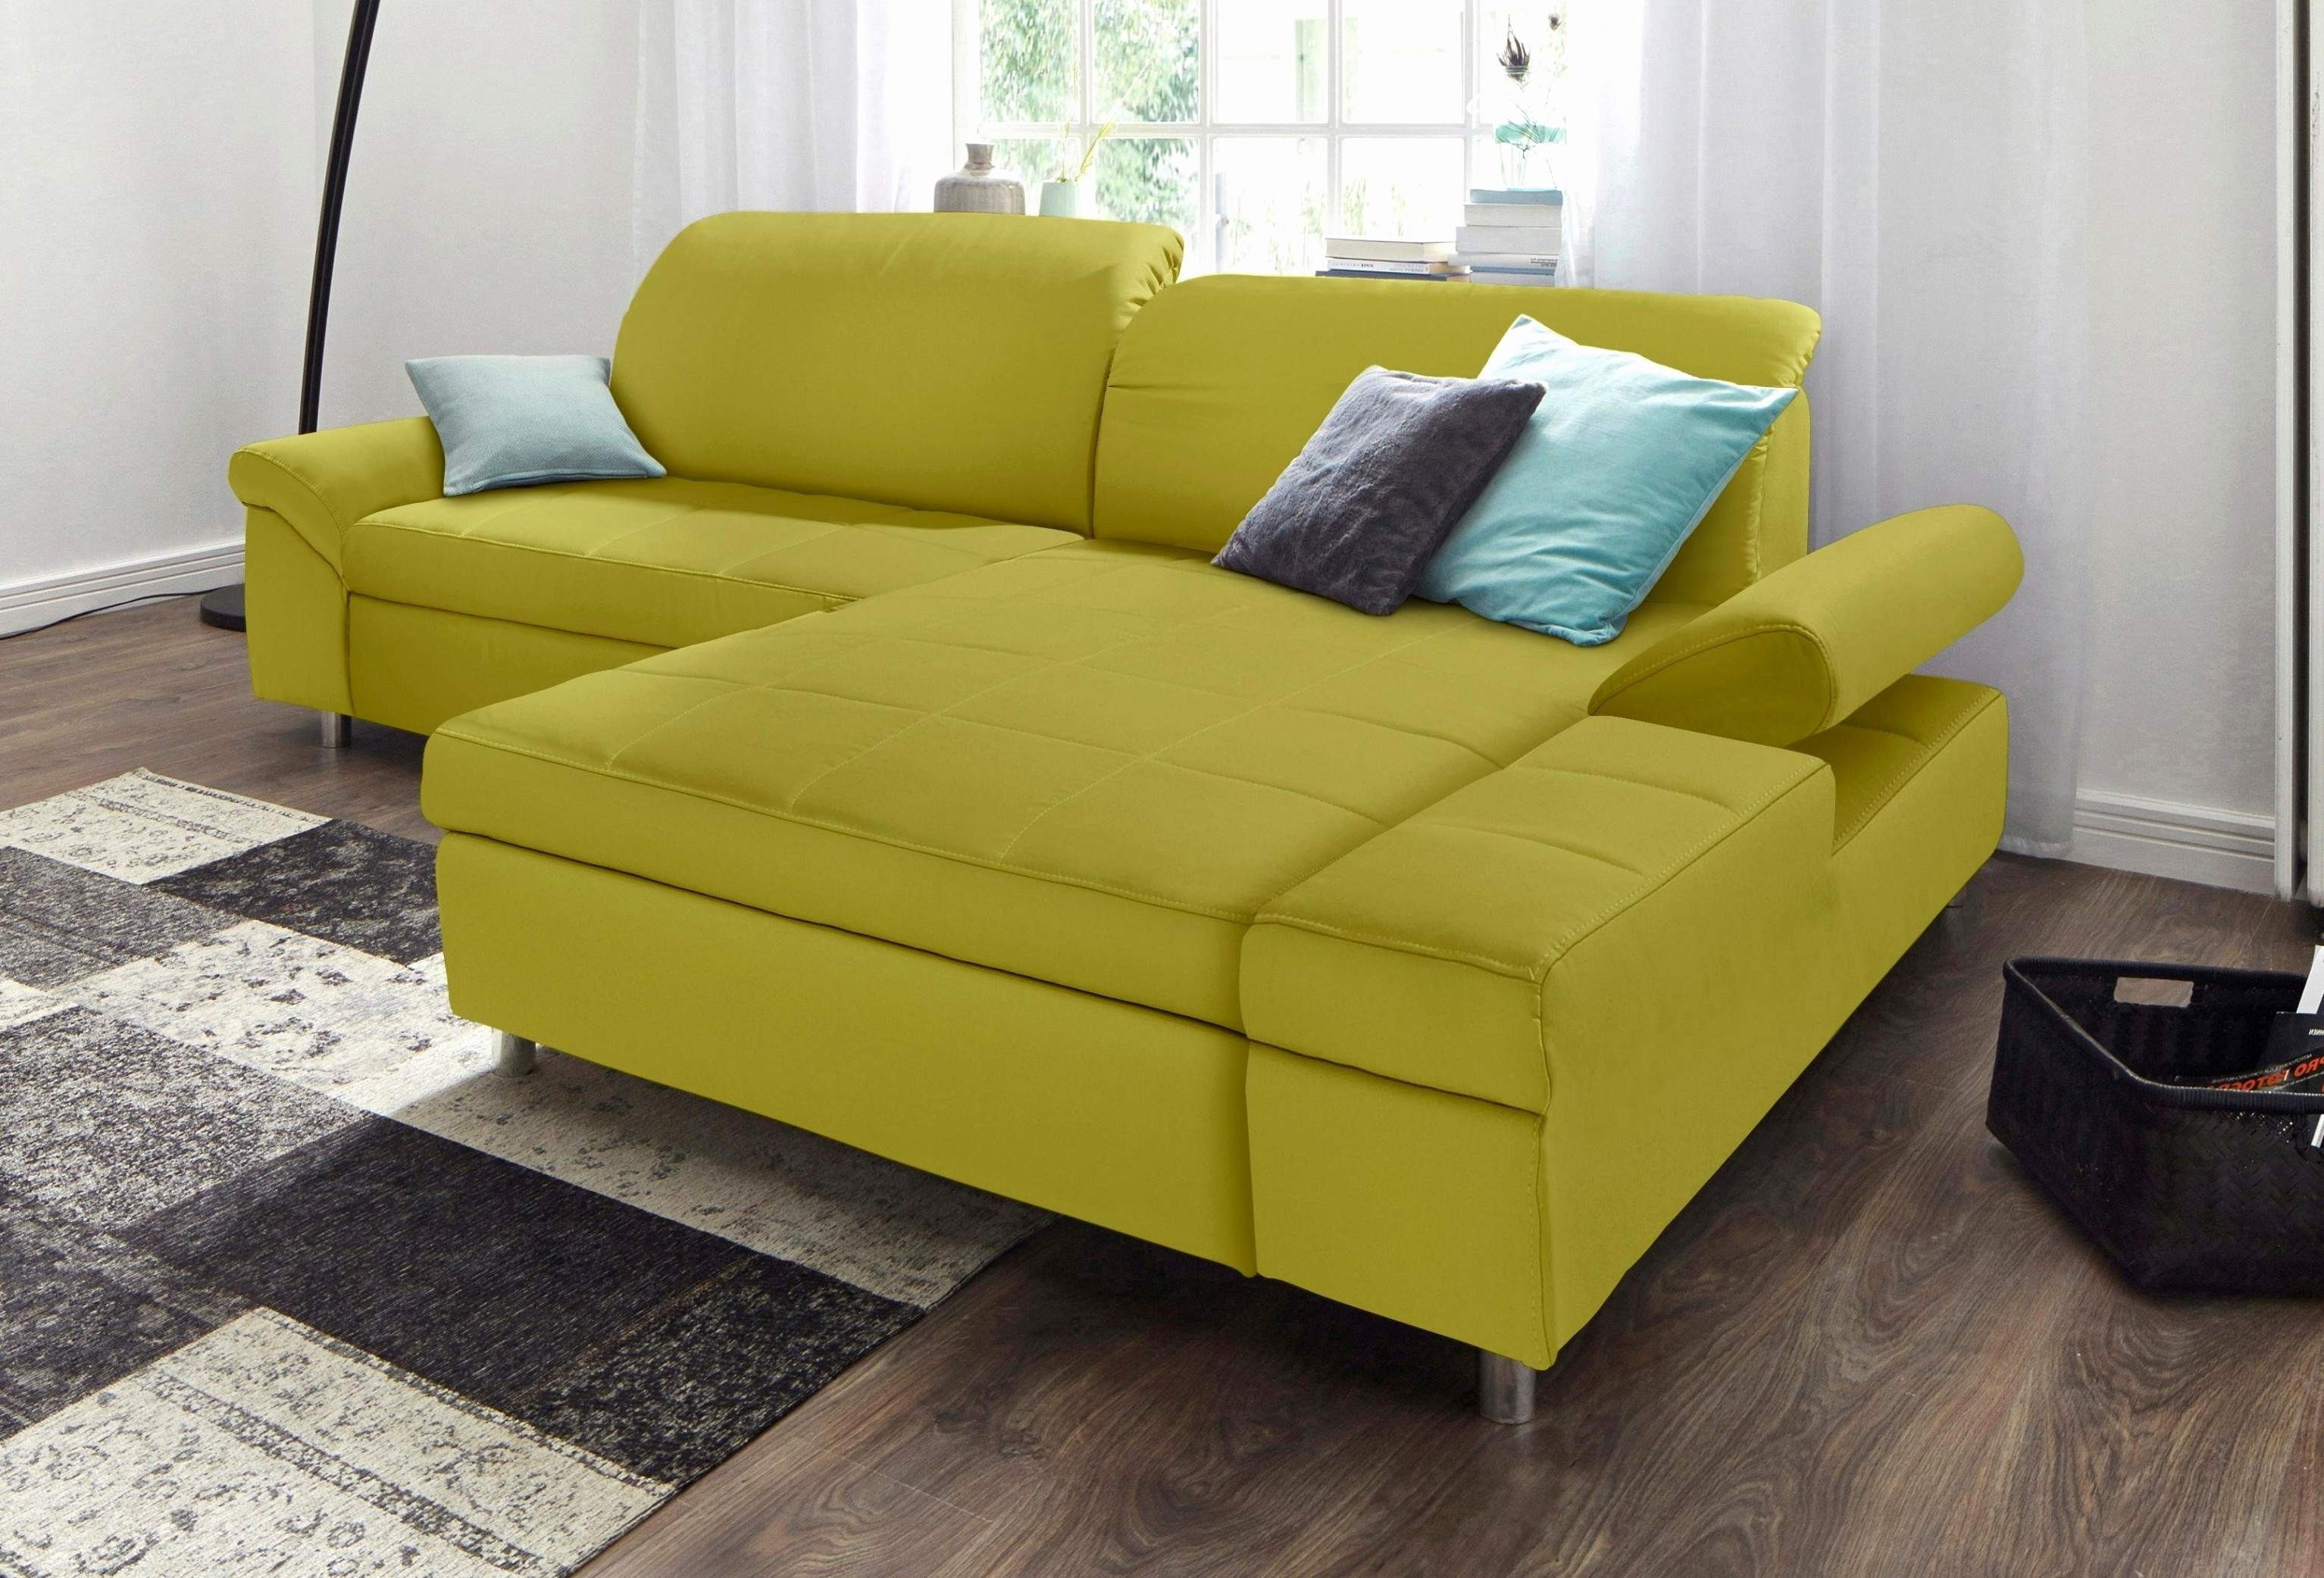 laminate or hardwood flooring which is better of best of pictures of laminate flooring in living rooms 332ndf org for laminate flooring ideas living room awesome mobel yellow living room lounge chair fresh palettenmobel lounge 0d